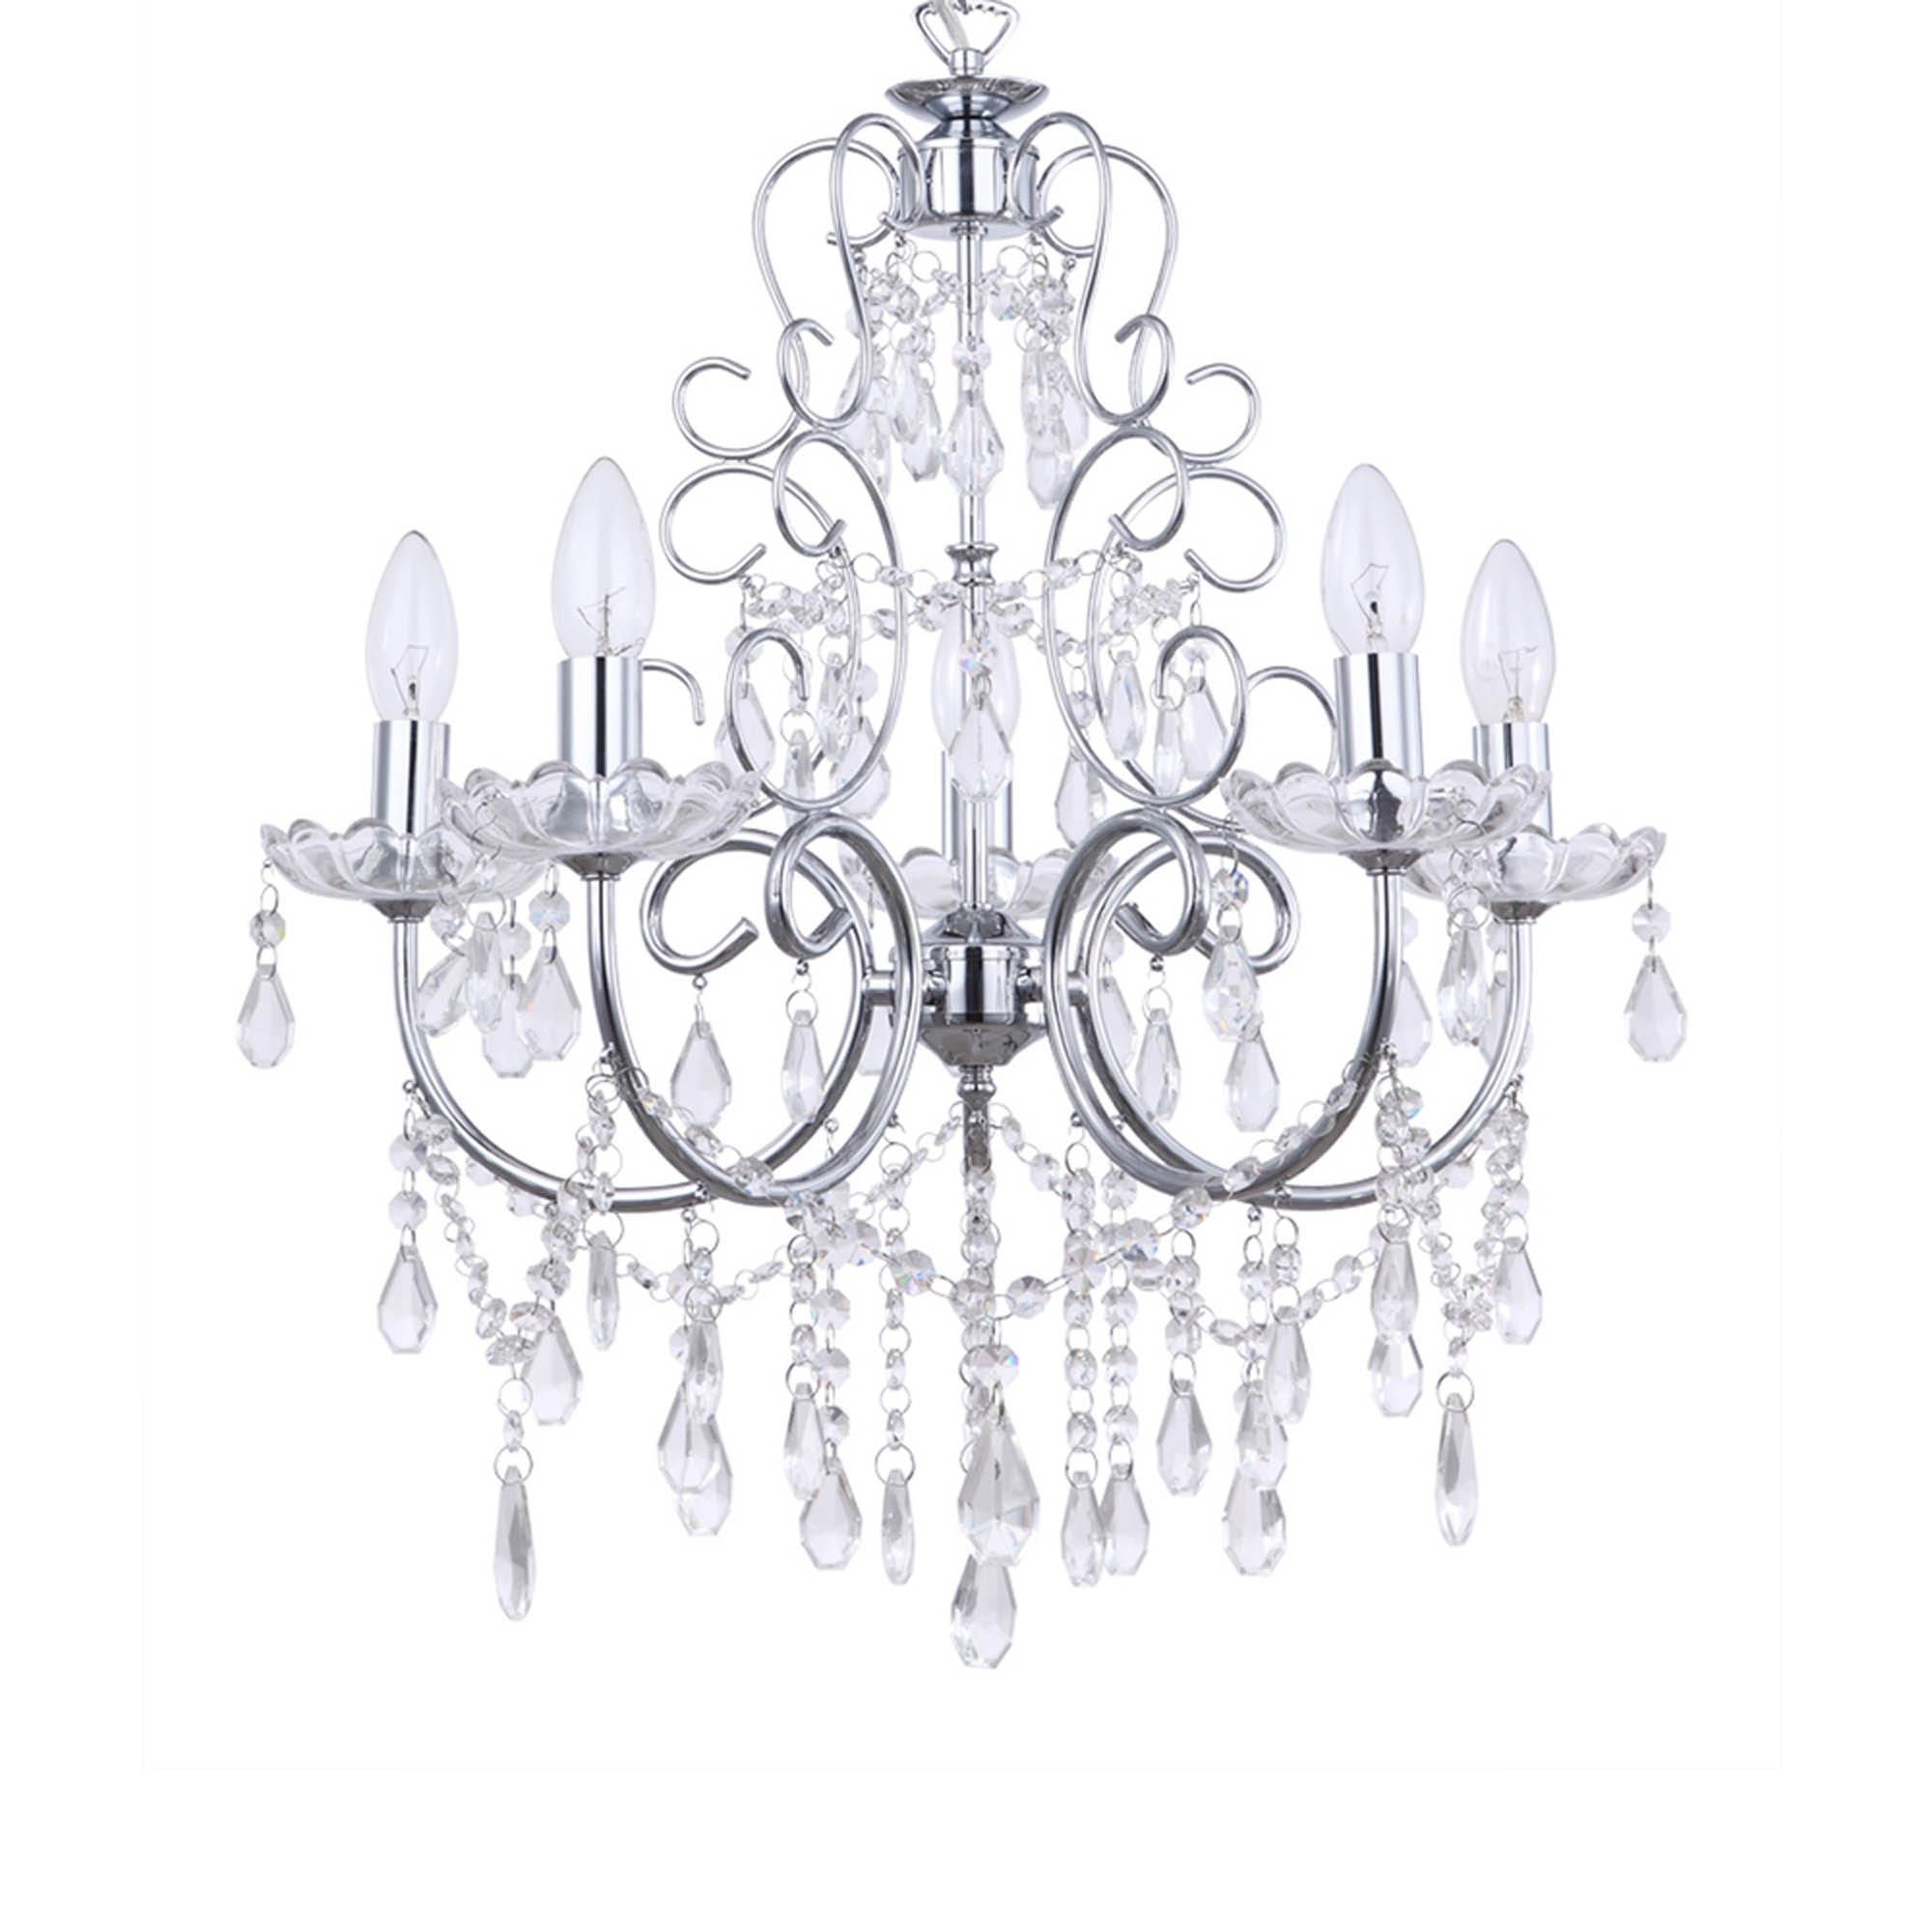 Compare prices for Litecraft Madonna Chrome Chandelier